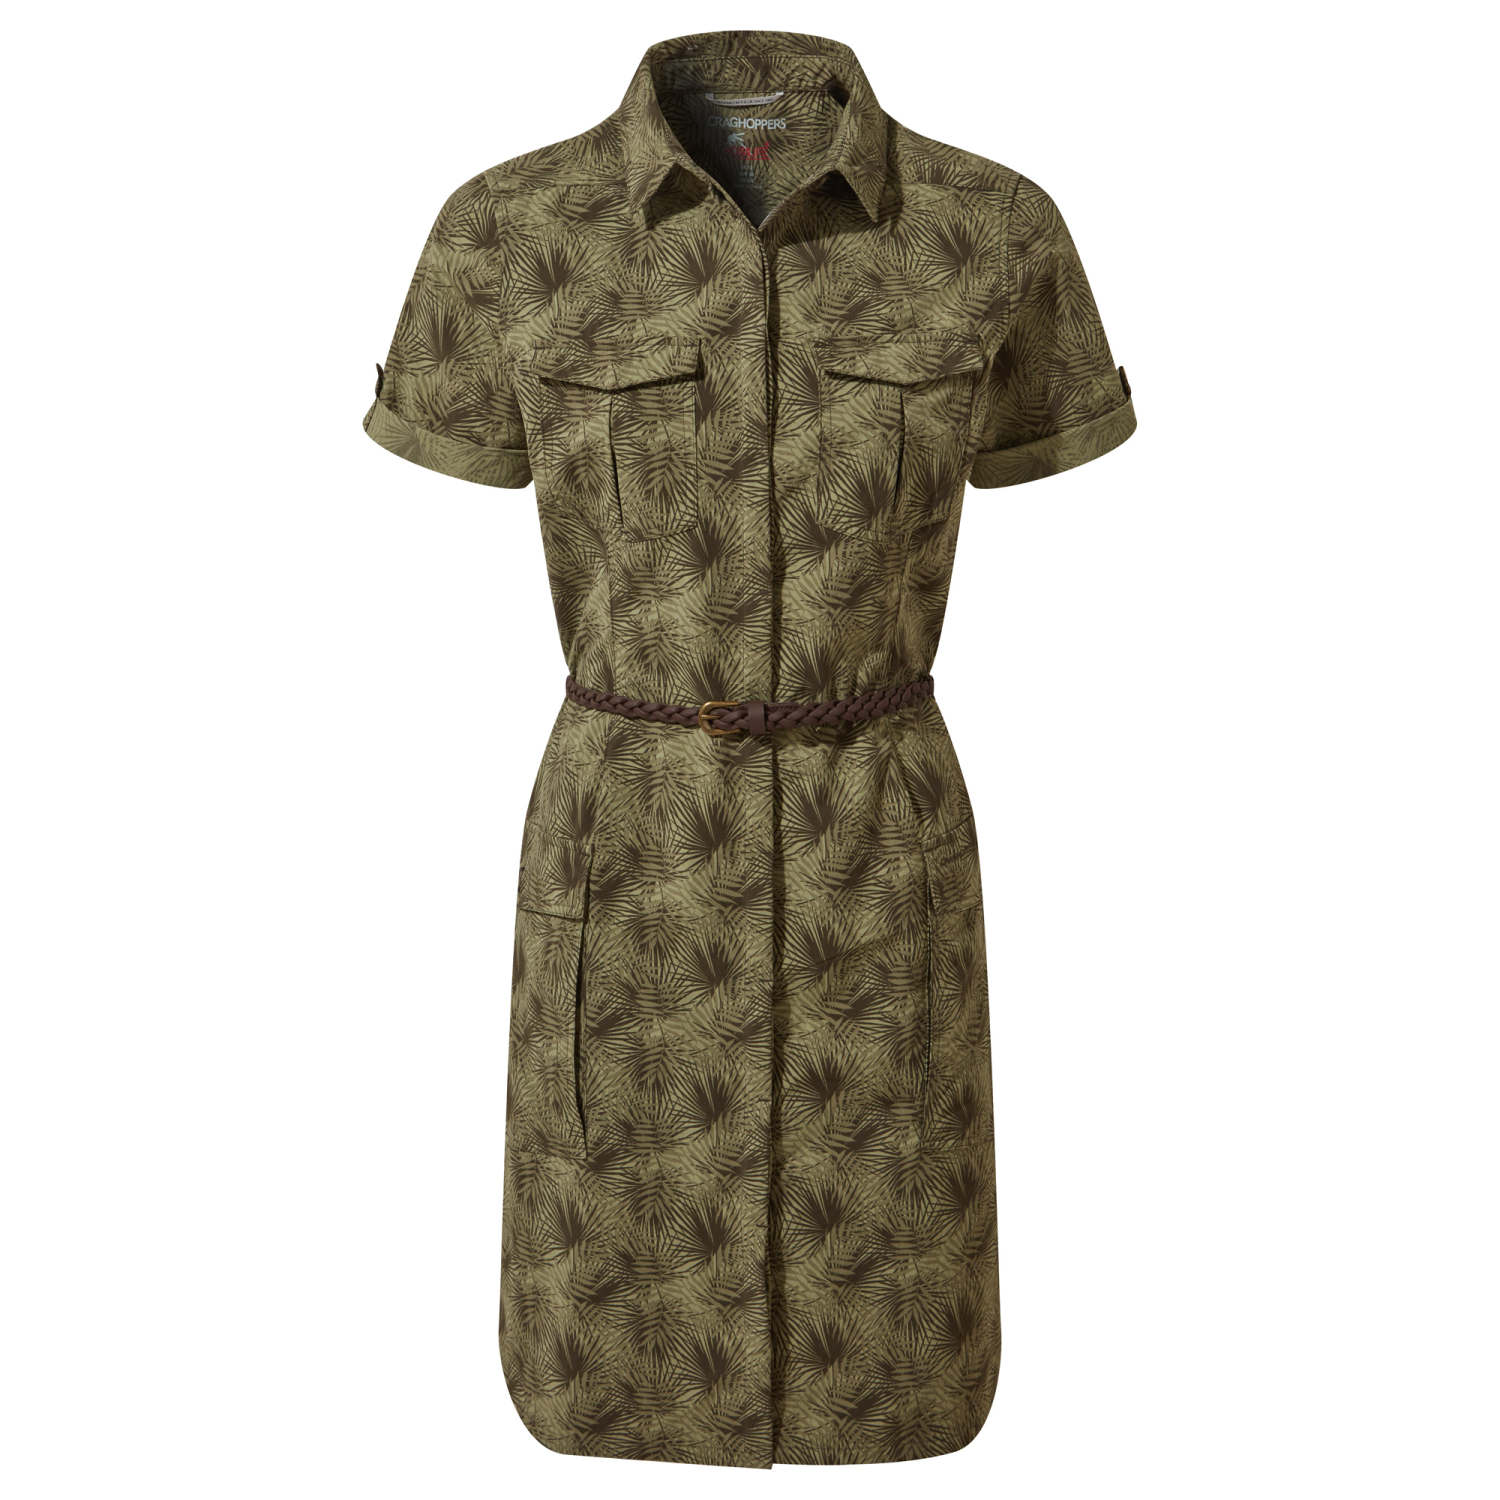 Craghoppers Savannah Dress Damen Kleid olive von Craghoppers